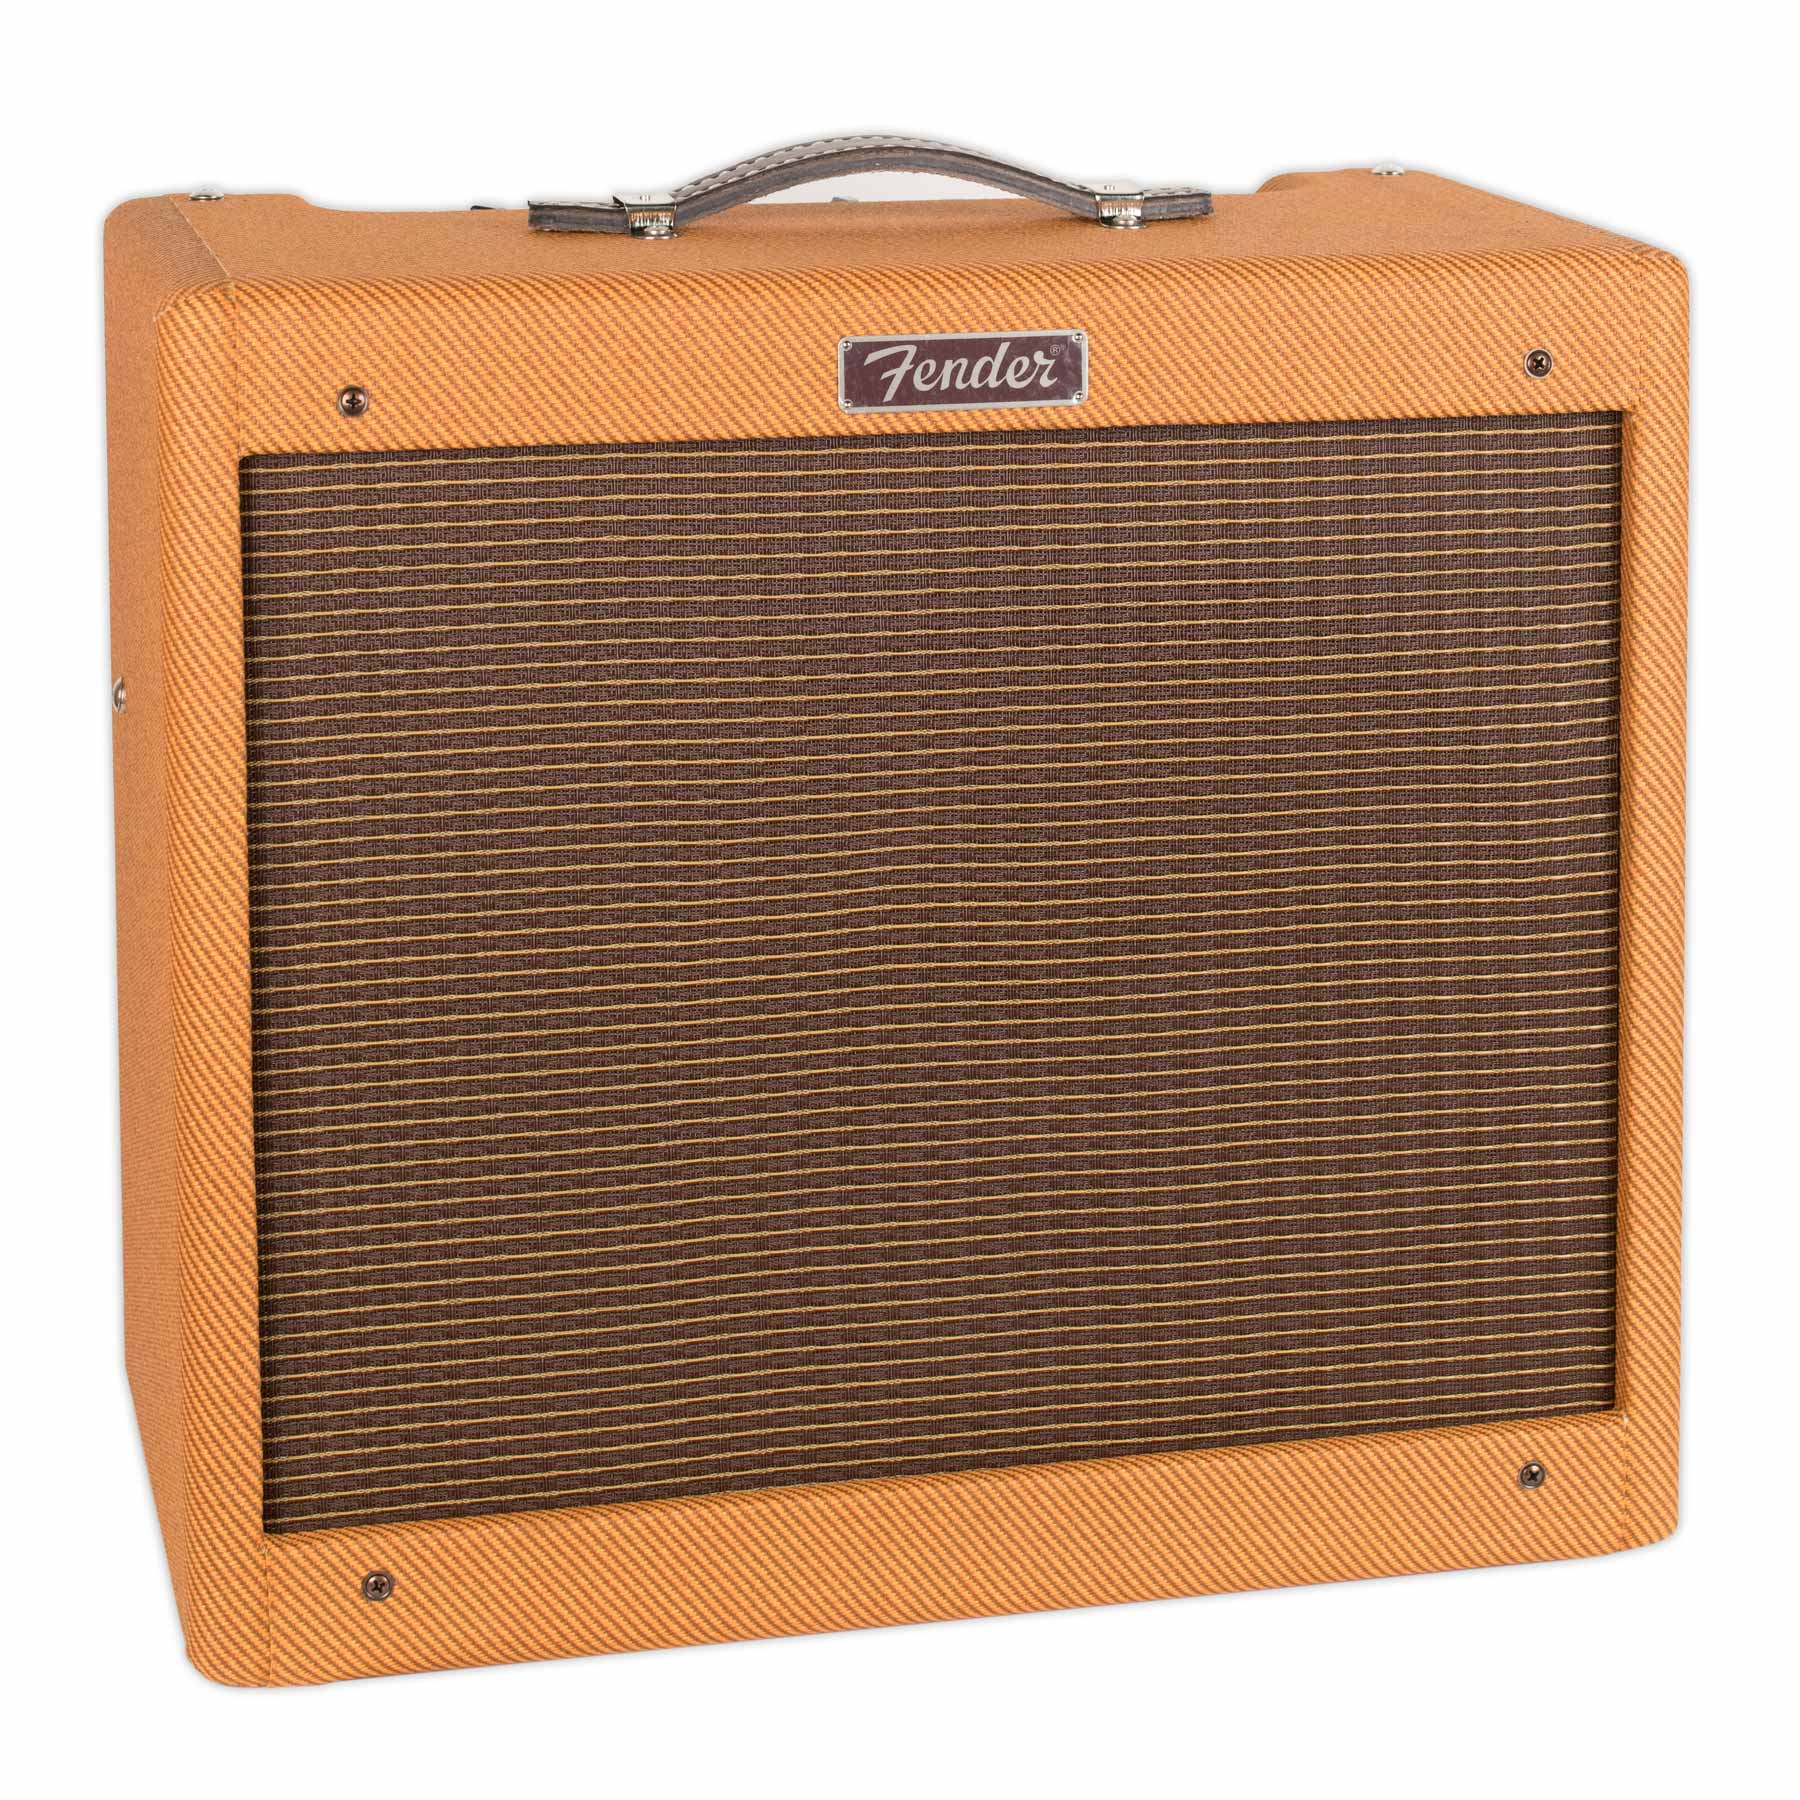 FENDER BLUES JUNIOR LTD LAQUERED TWEED WITH JENSEN C12